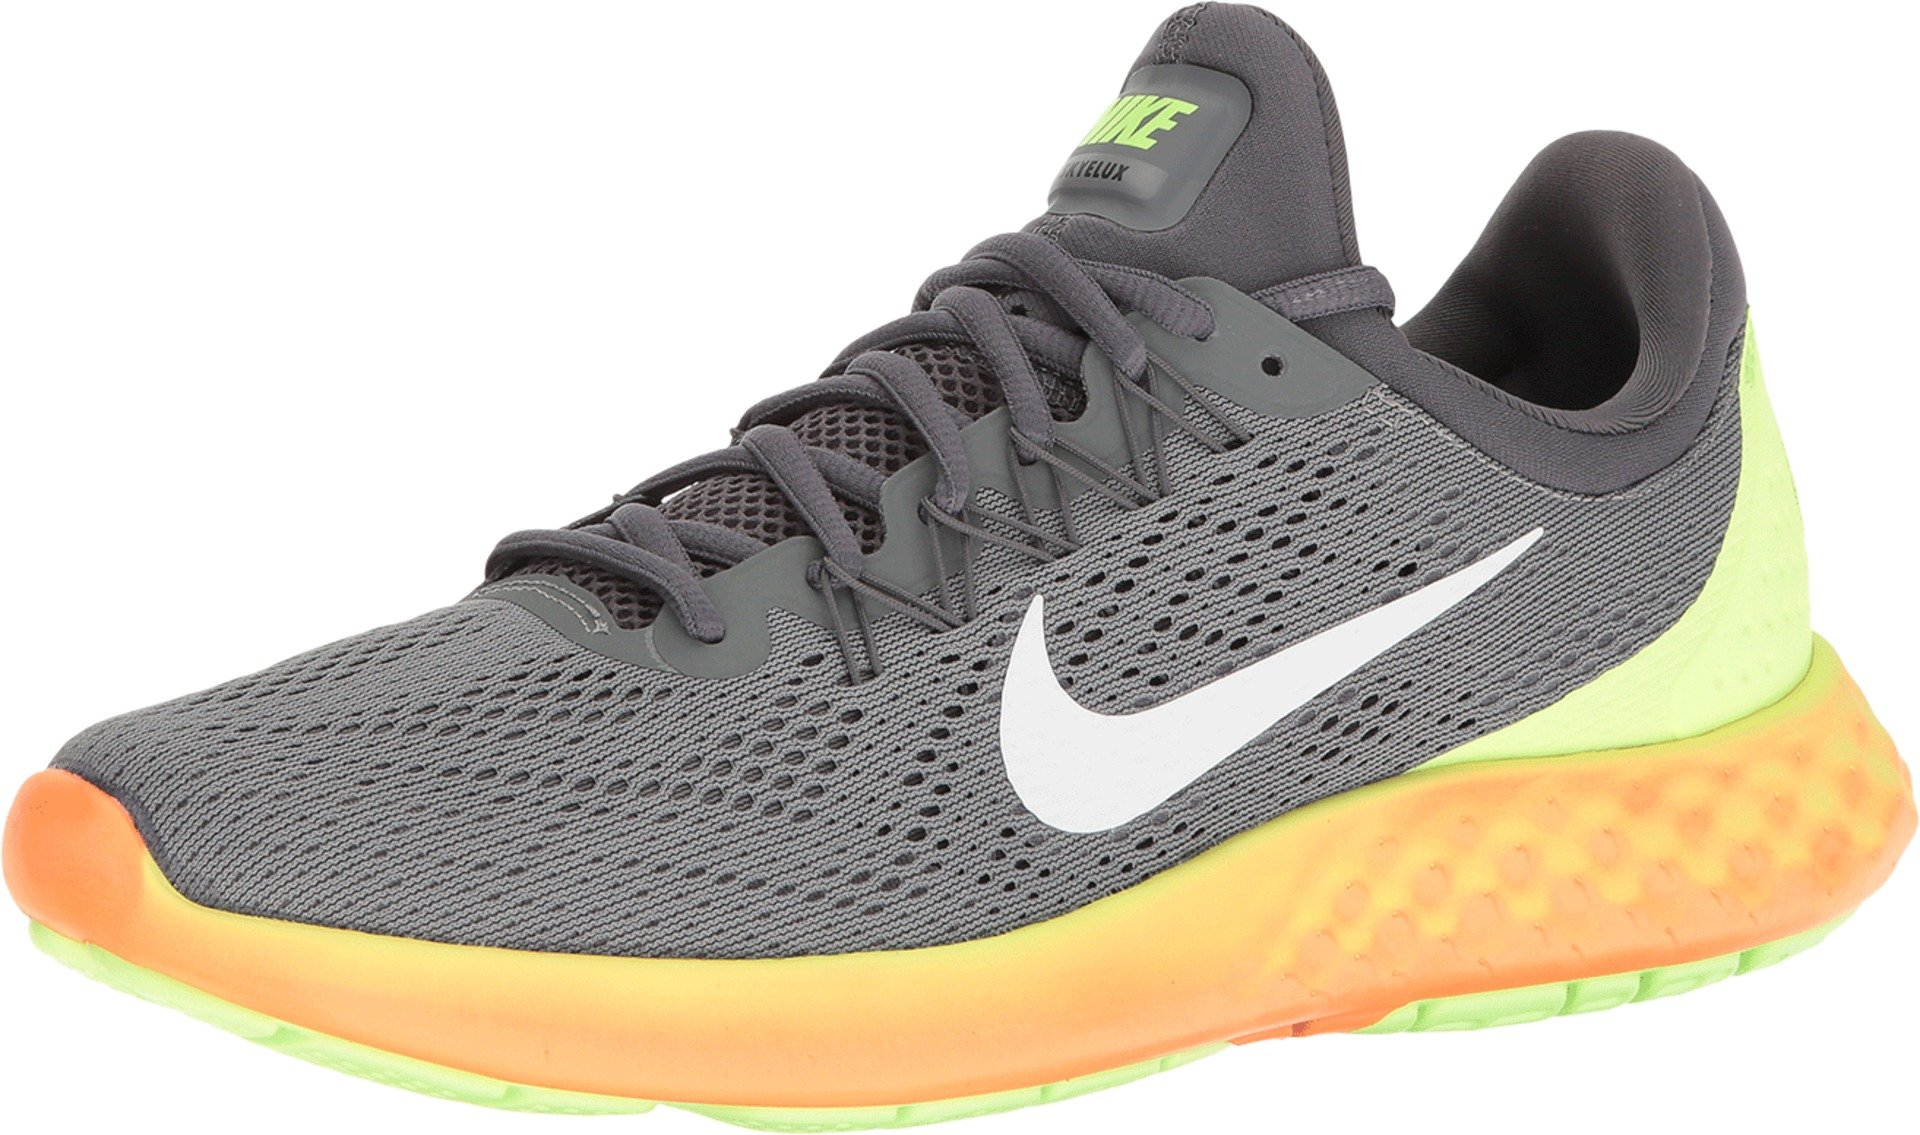 365495476f459 Nike Mens Lunar Skyelux Fabric Low Top Lace Up Running Sneaker, Grey, Size  8.5